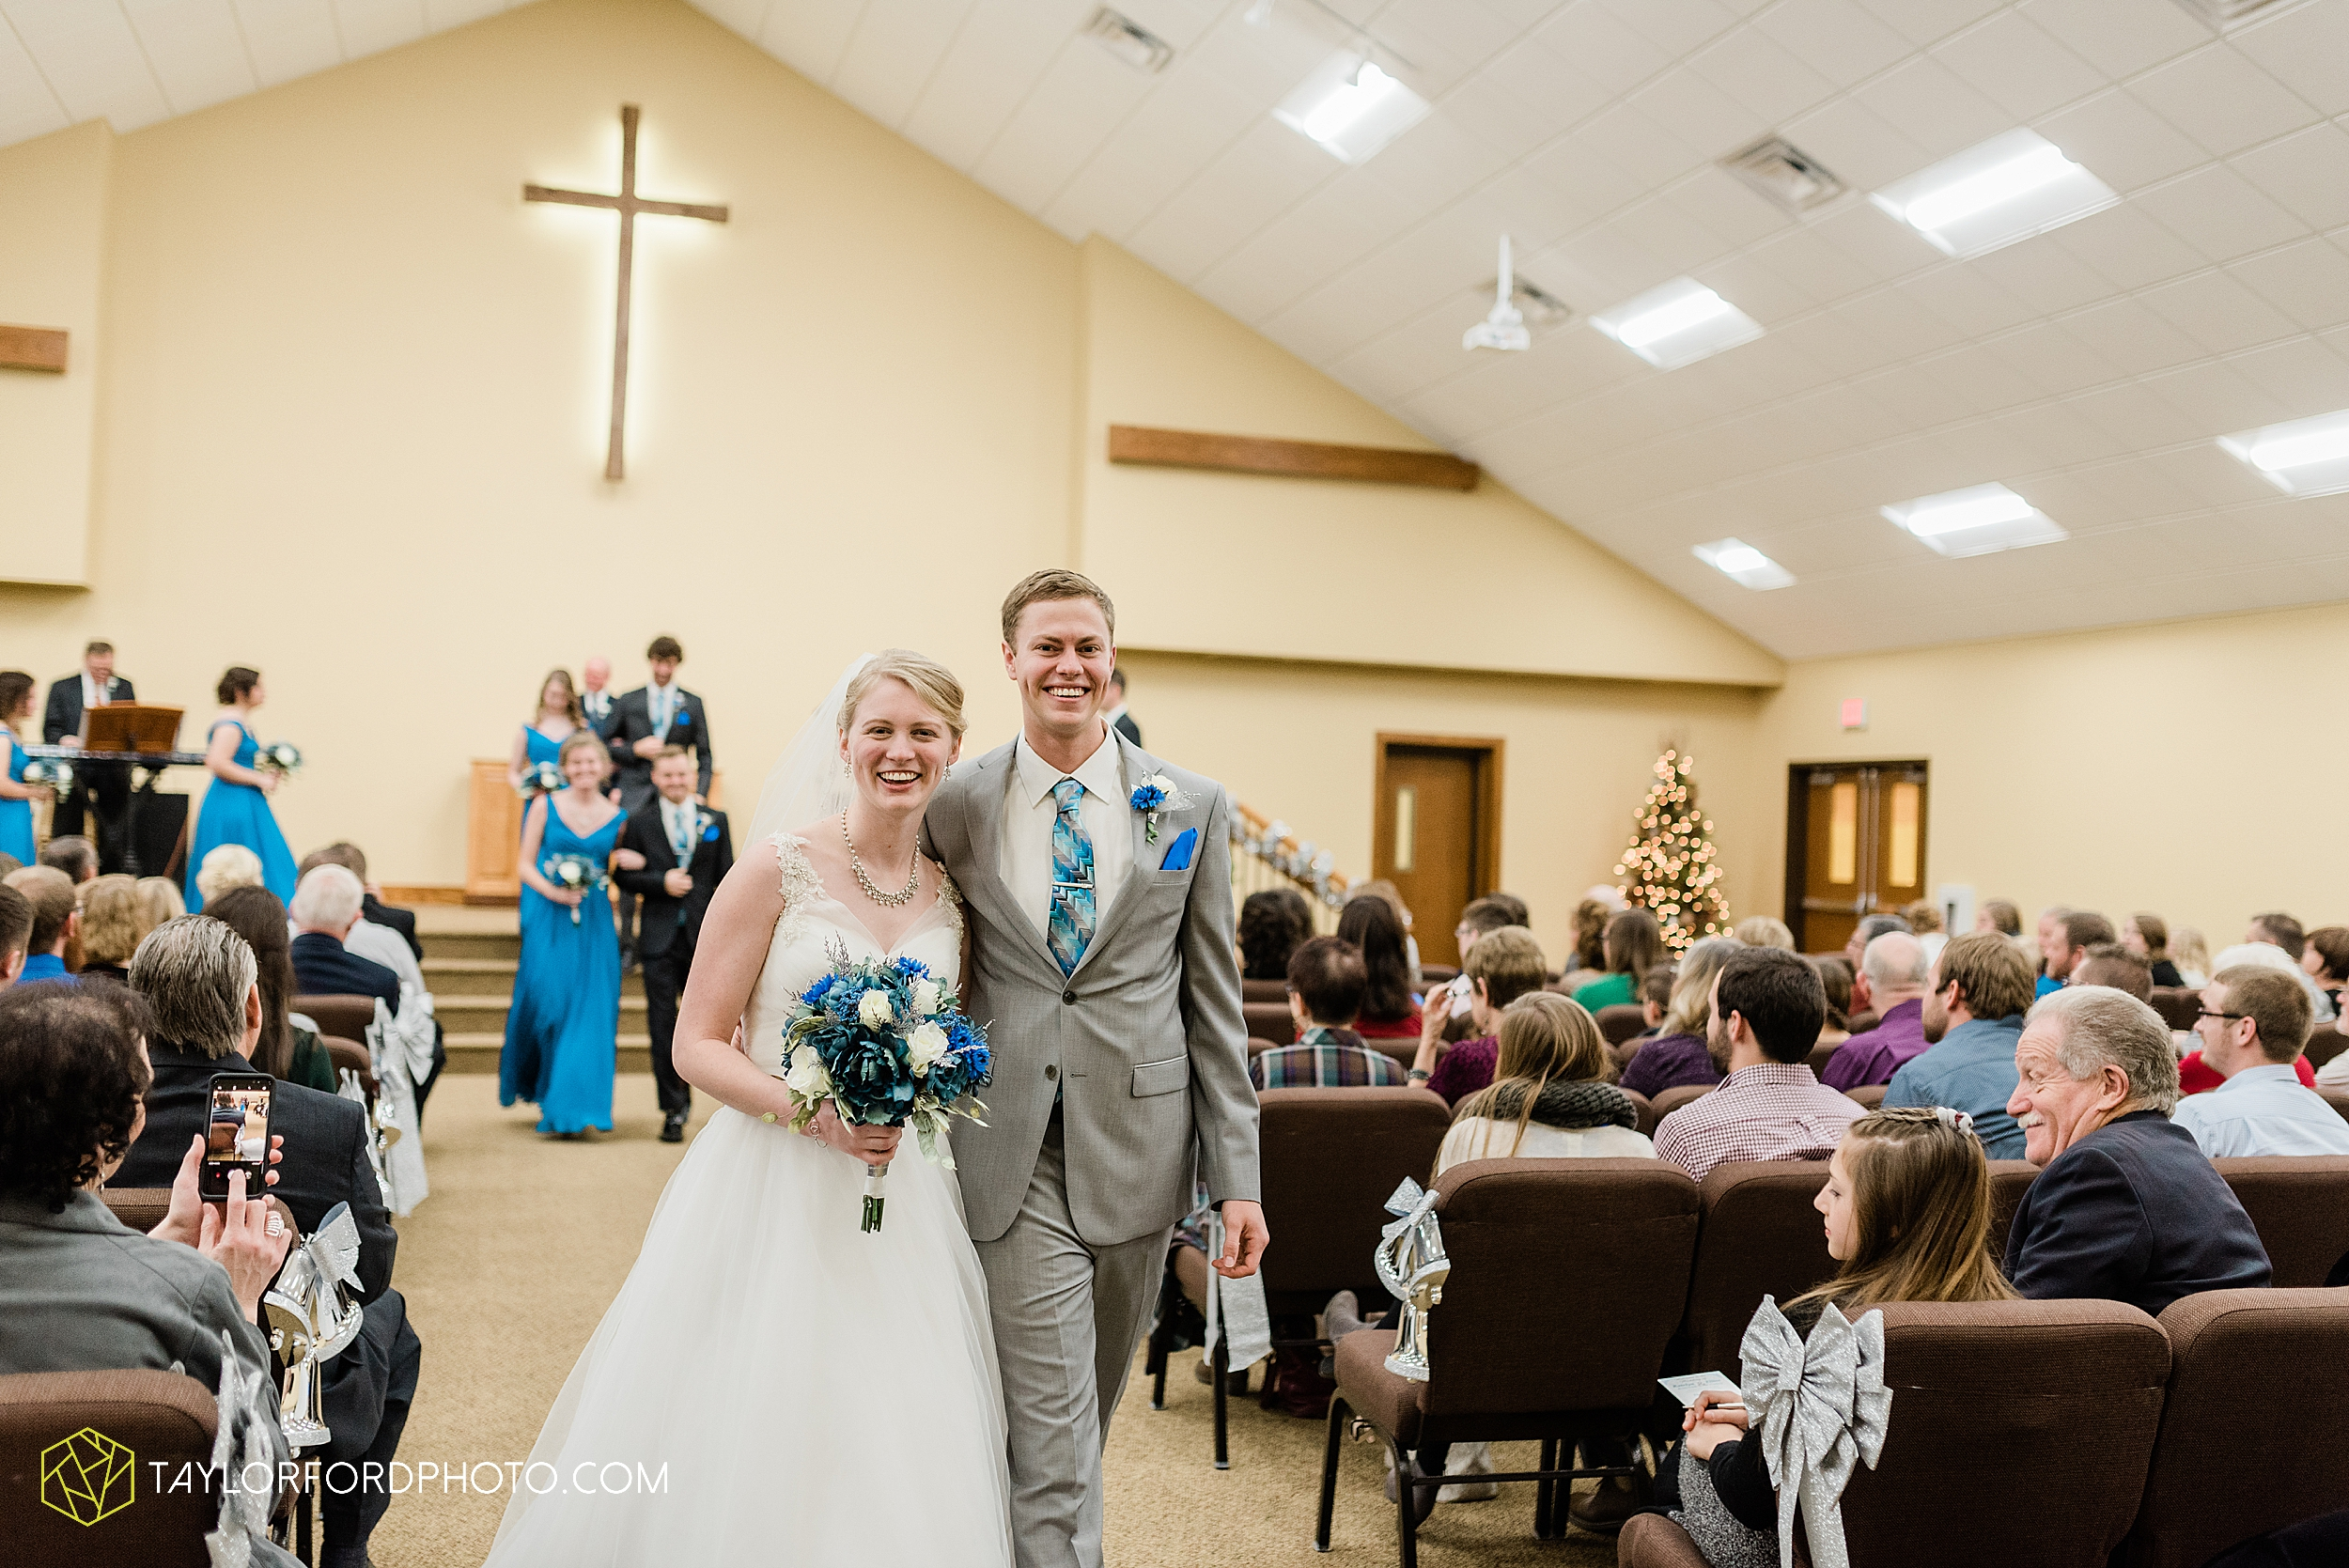 pleasant-view-church-christmas-celina-fraternal-order-of-eagles-reception-wedding-wren-willshire-van-wert-ohio-photography-taylor-ford-hirschy-photographer_2157.jpg